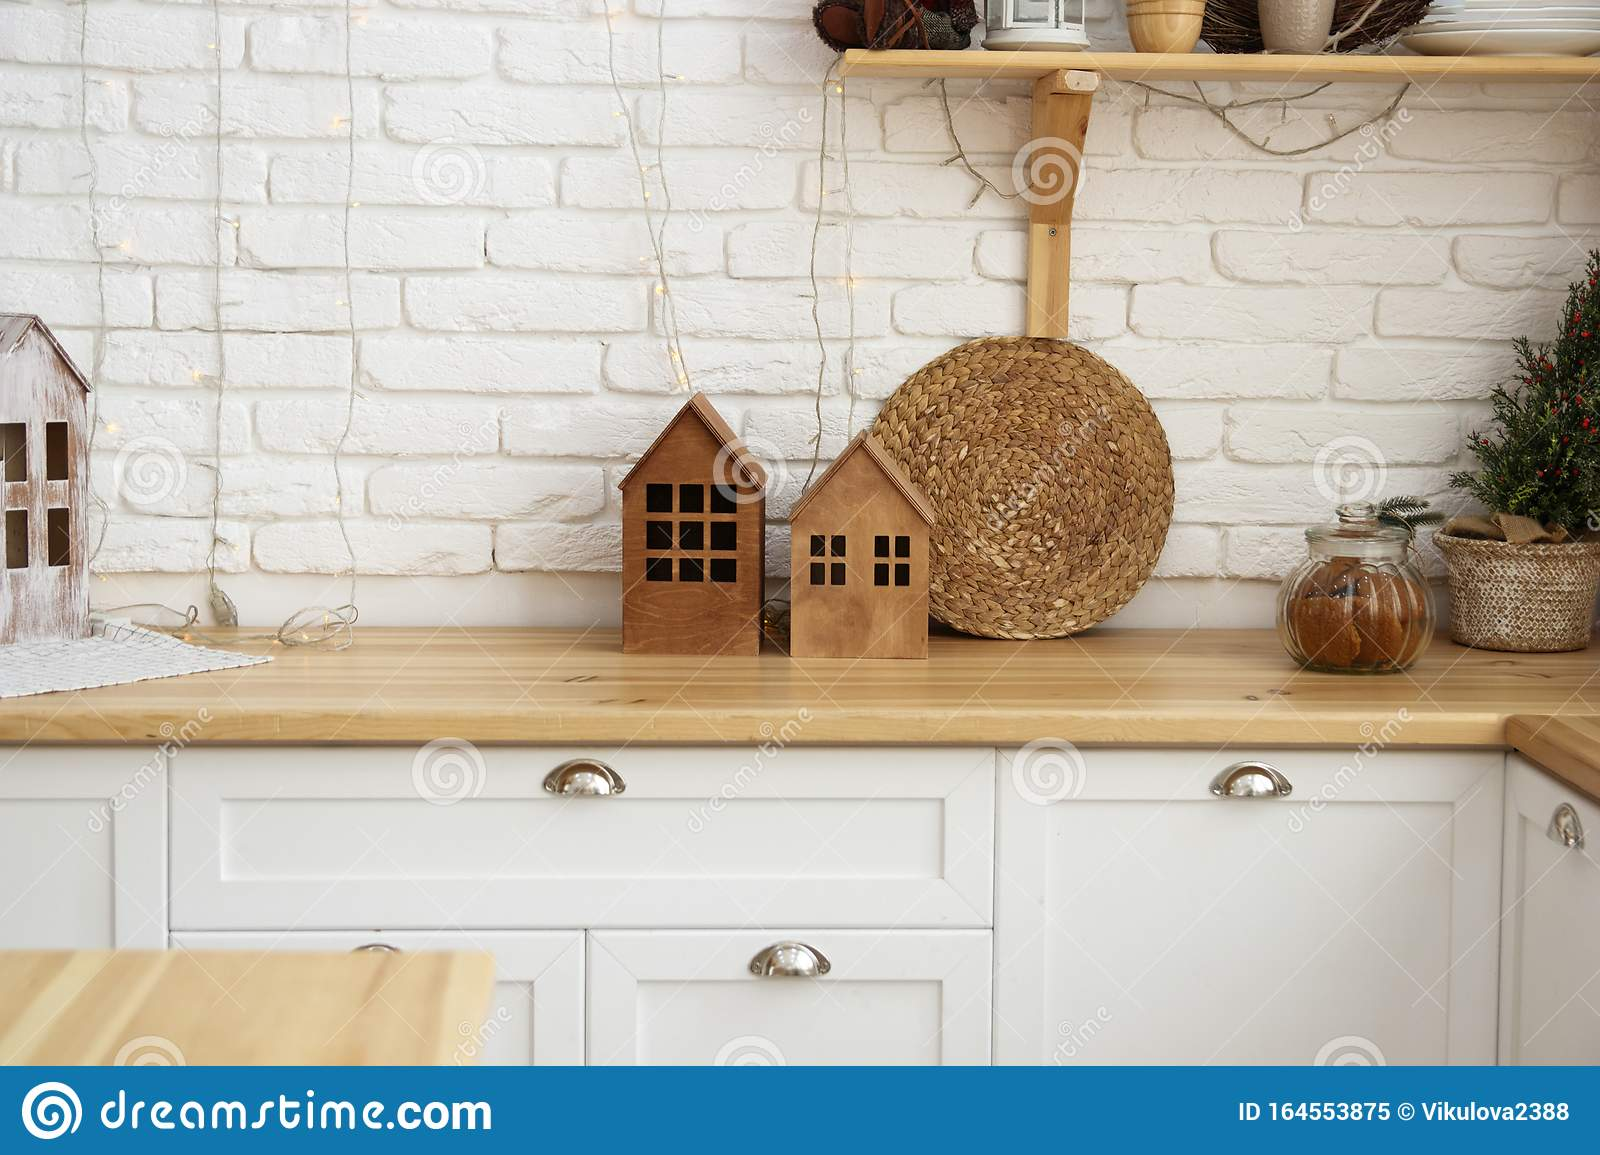 Modern Kitchen Interior With White Brick Walls Wooden Countertops Stock Image Image Of Light Countertop 164553875